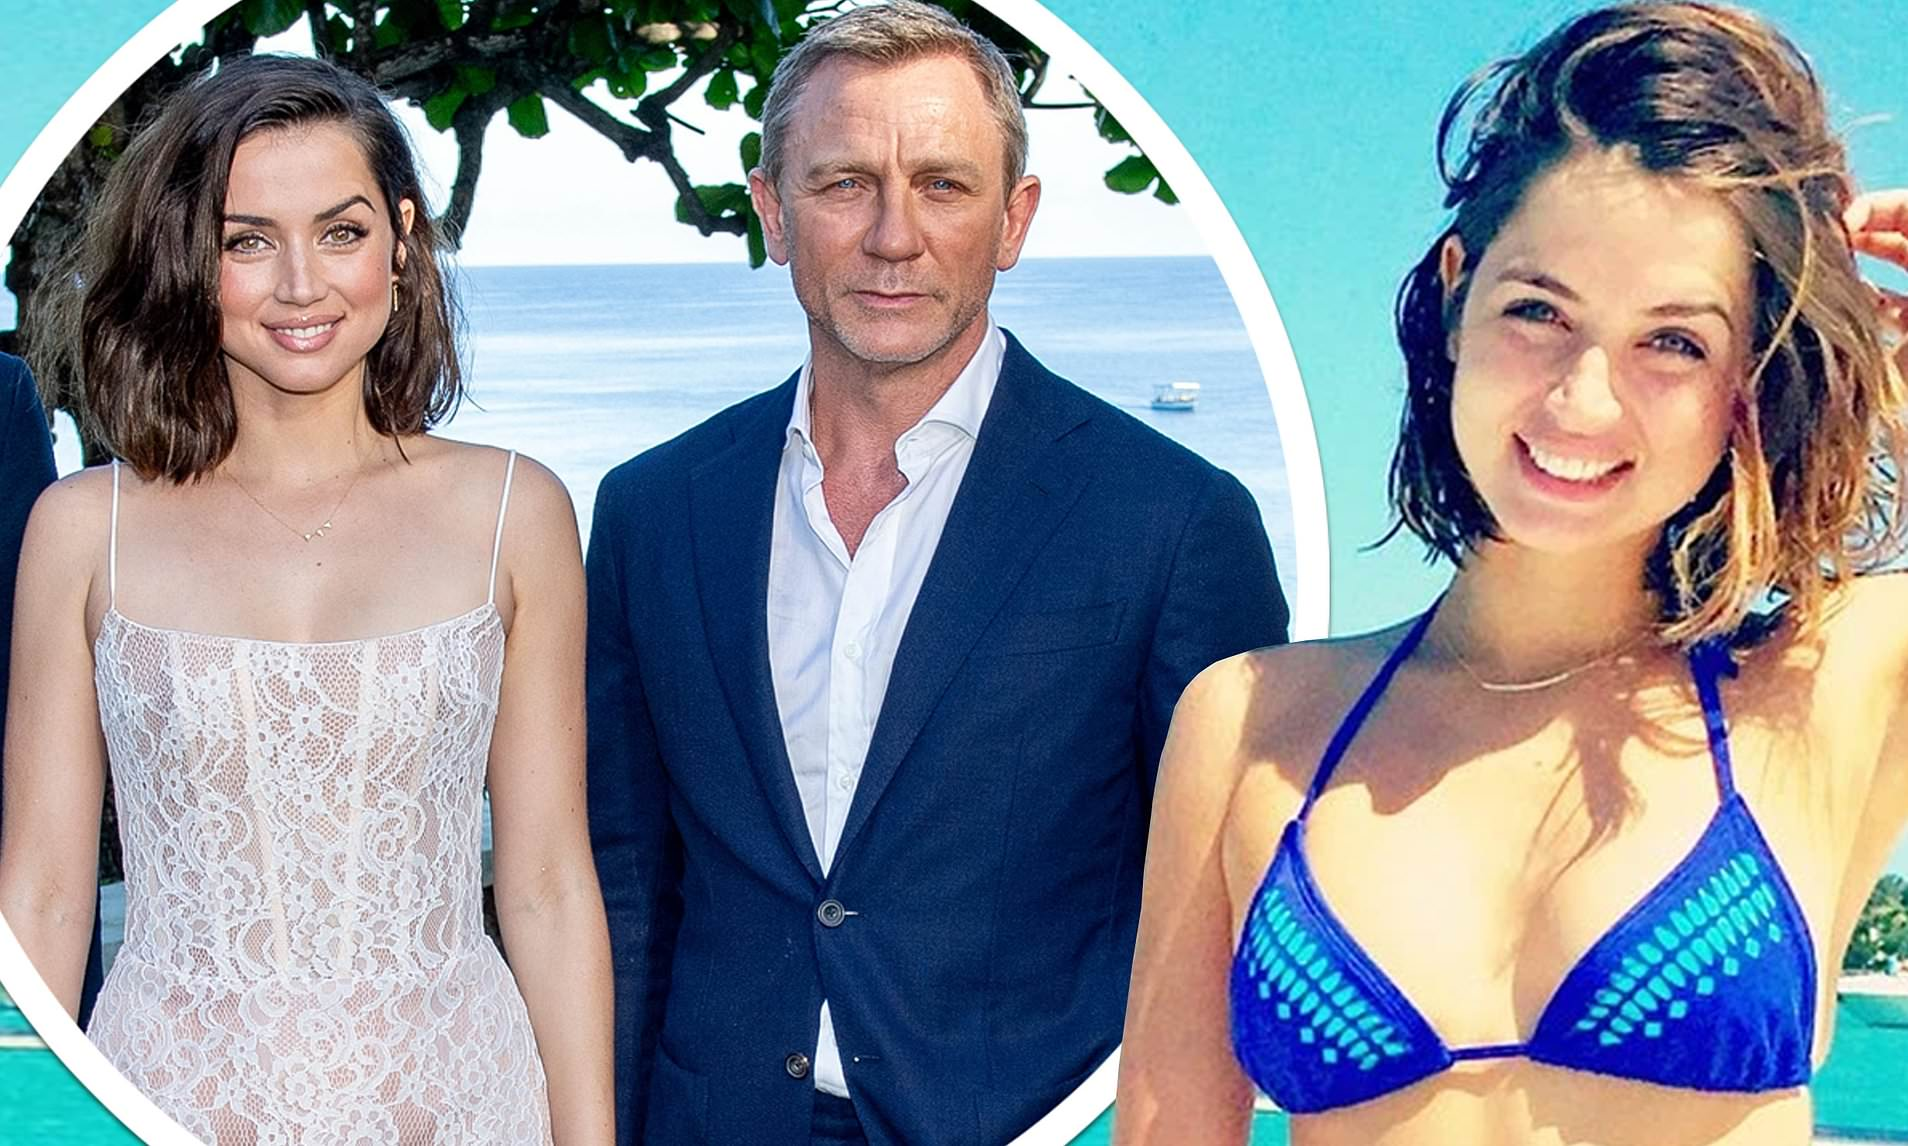 James Bond e la nuova Bond Girl avranno un